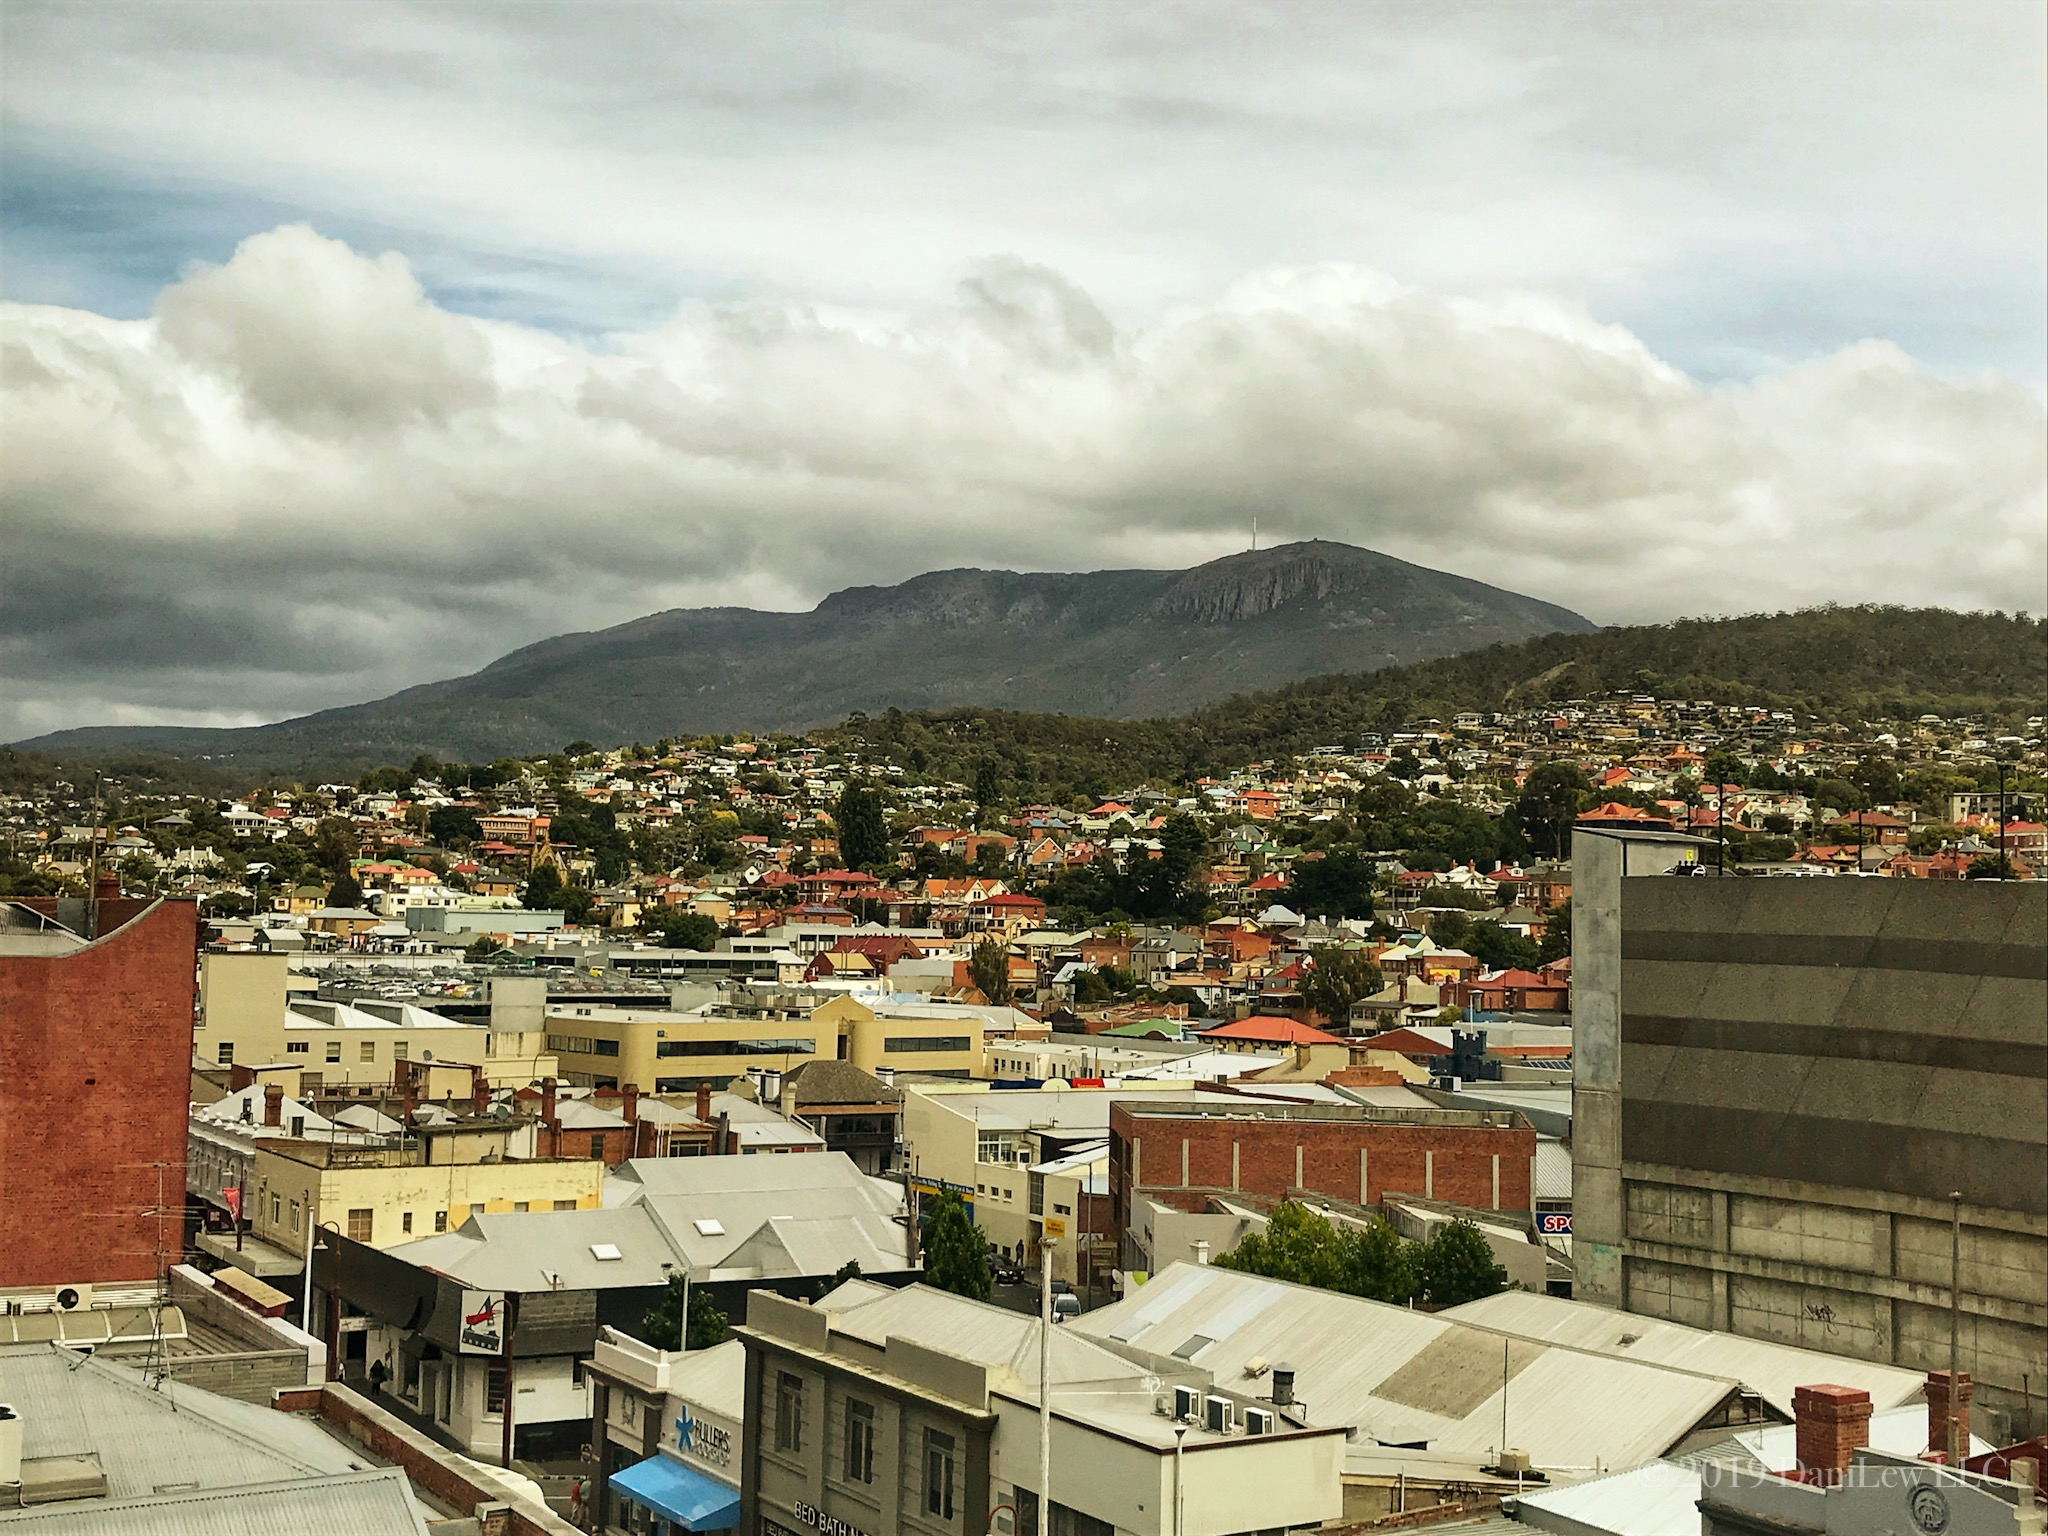 View of Mt Wellington Hobart Tasmania - image taken with an iPhone 7